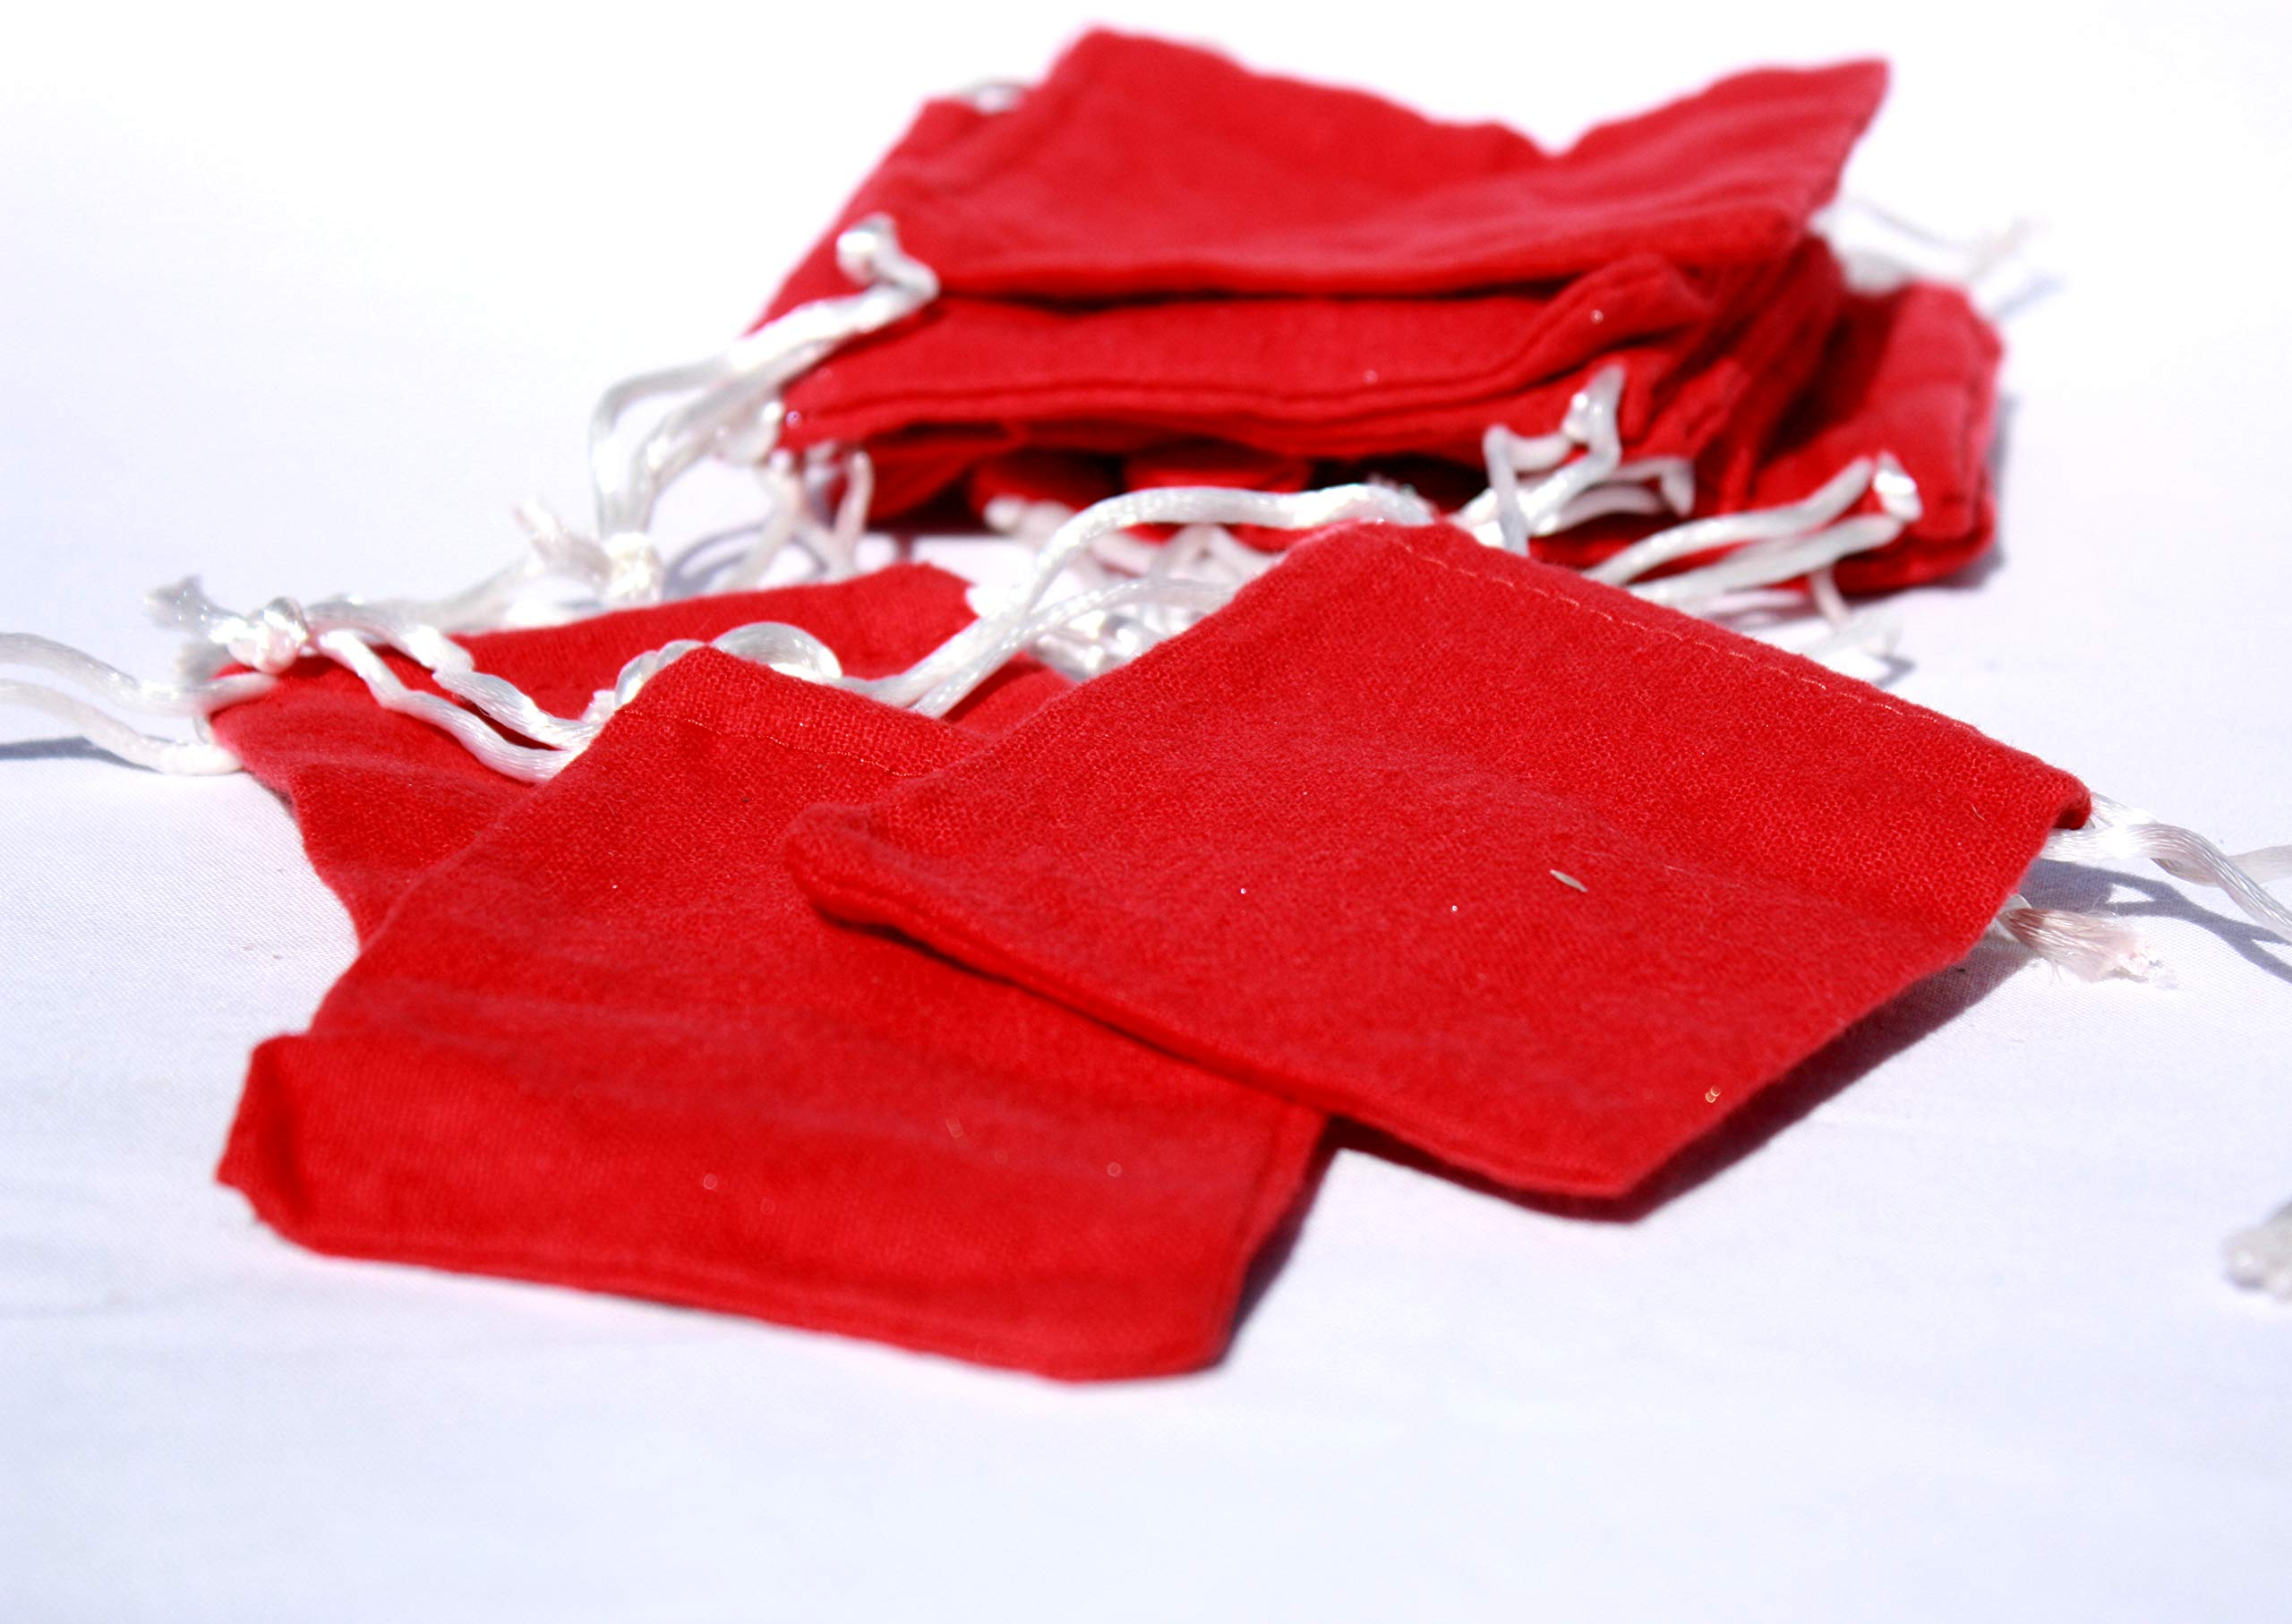 AURA VARIETY 72-Piece 3''x4'' Small RED Flannel Bag with White String Traditional Wiccan Gris Gris Mojo Treasure Bag by AURA VARIETY (Image #2)